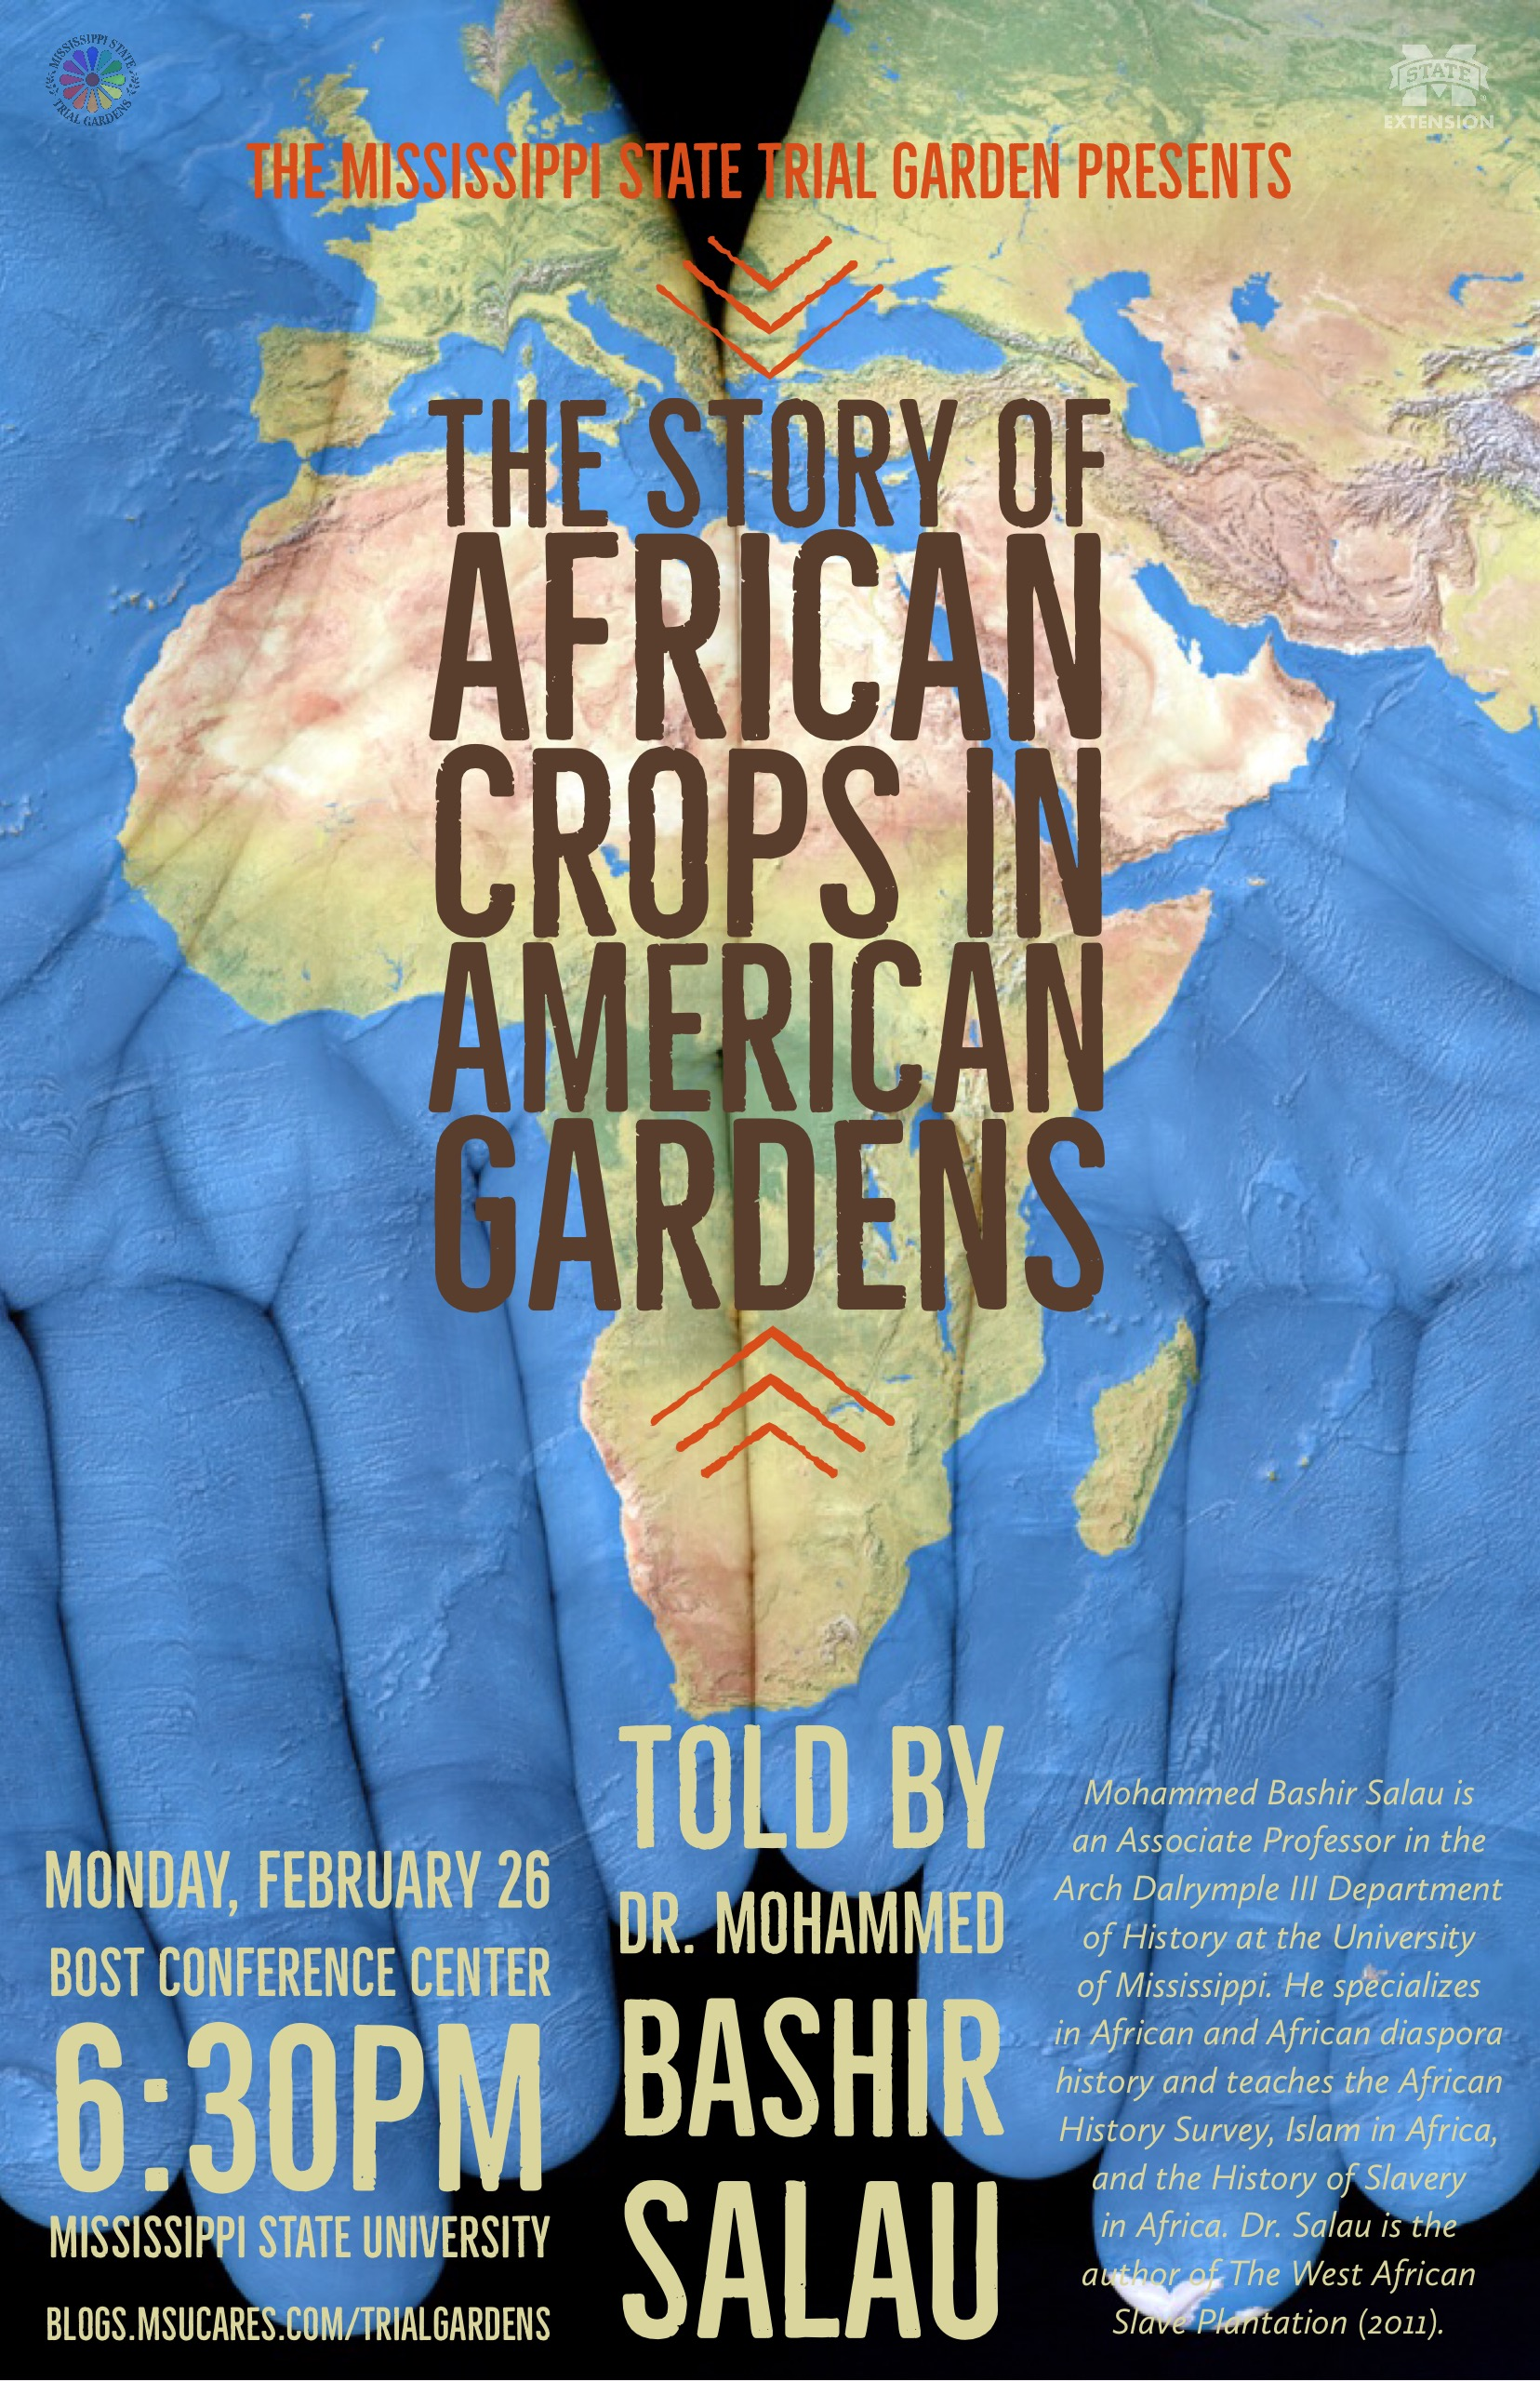 poster for The Story of African Crops in American Gardens.